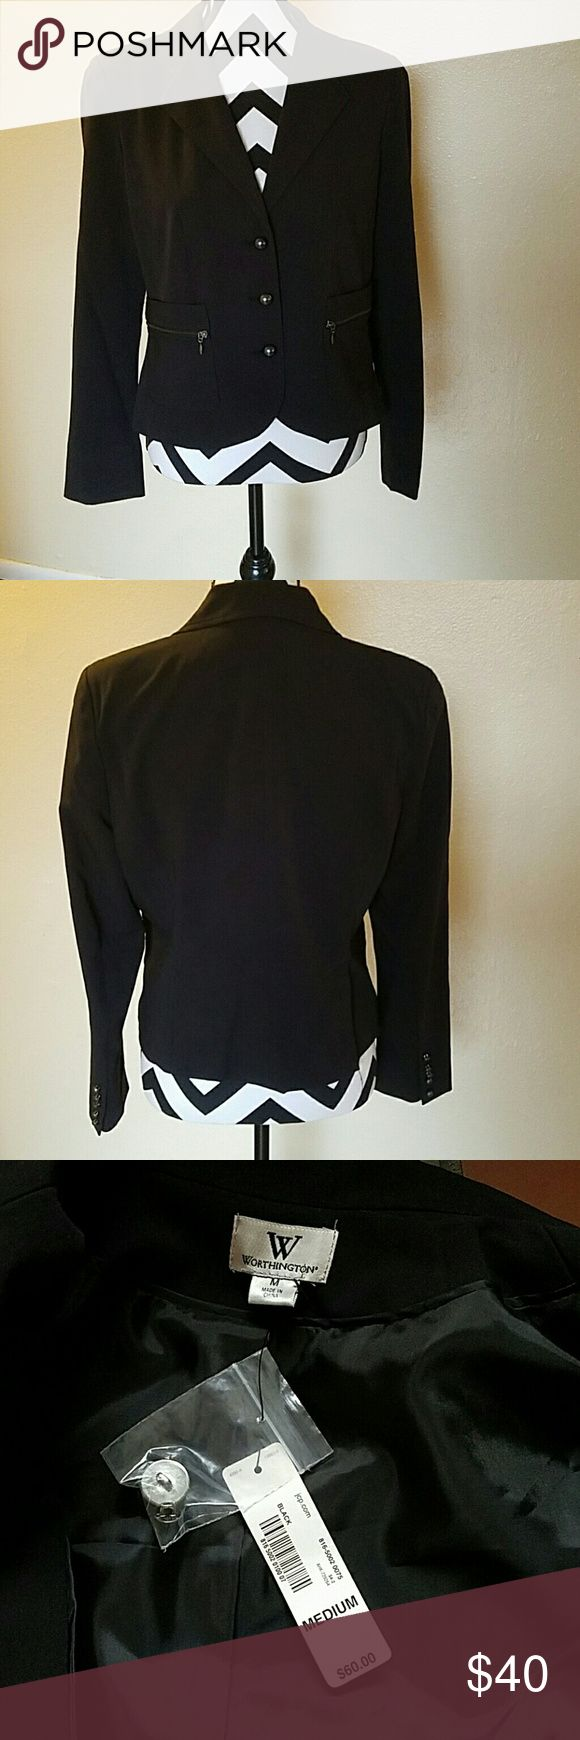 NWT Worthington Suit Jacket/Blazer NWT, size medium, solid black button down suit jacket.  You can pair it pretty much with anything. Worthington Jackets & Coats